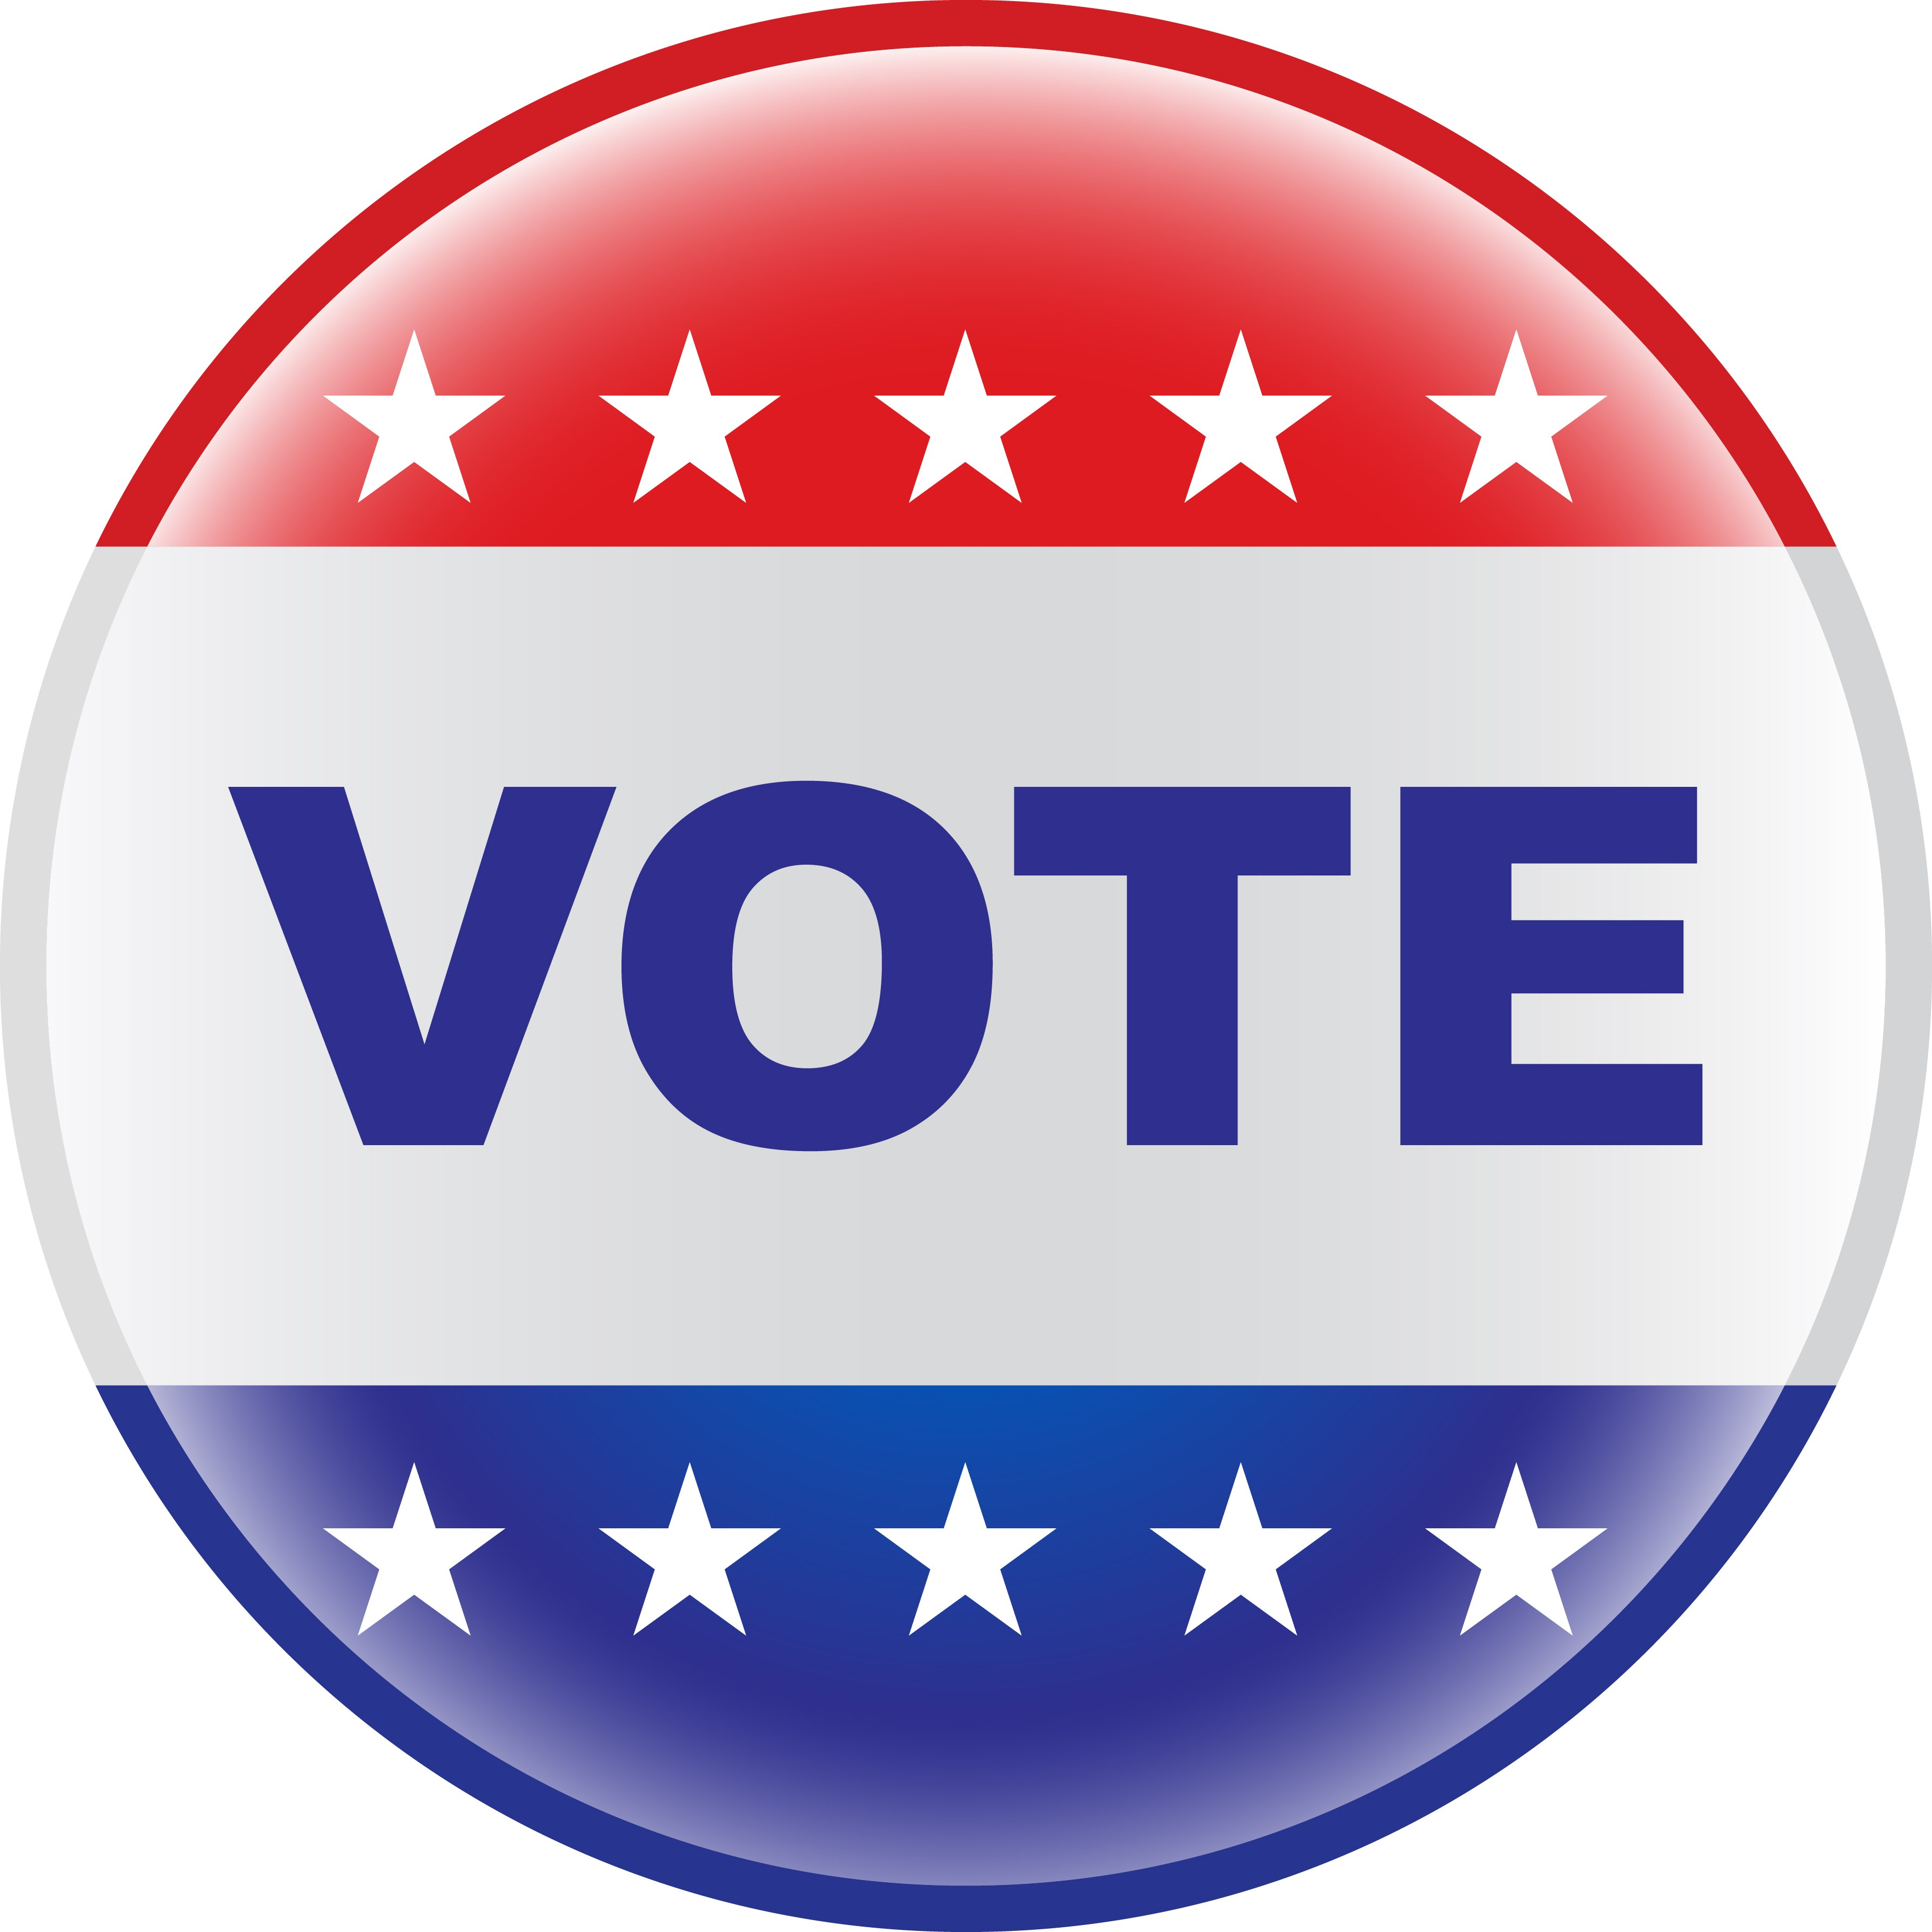 Voting clipart election day. Vote picture free download